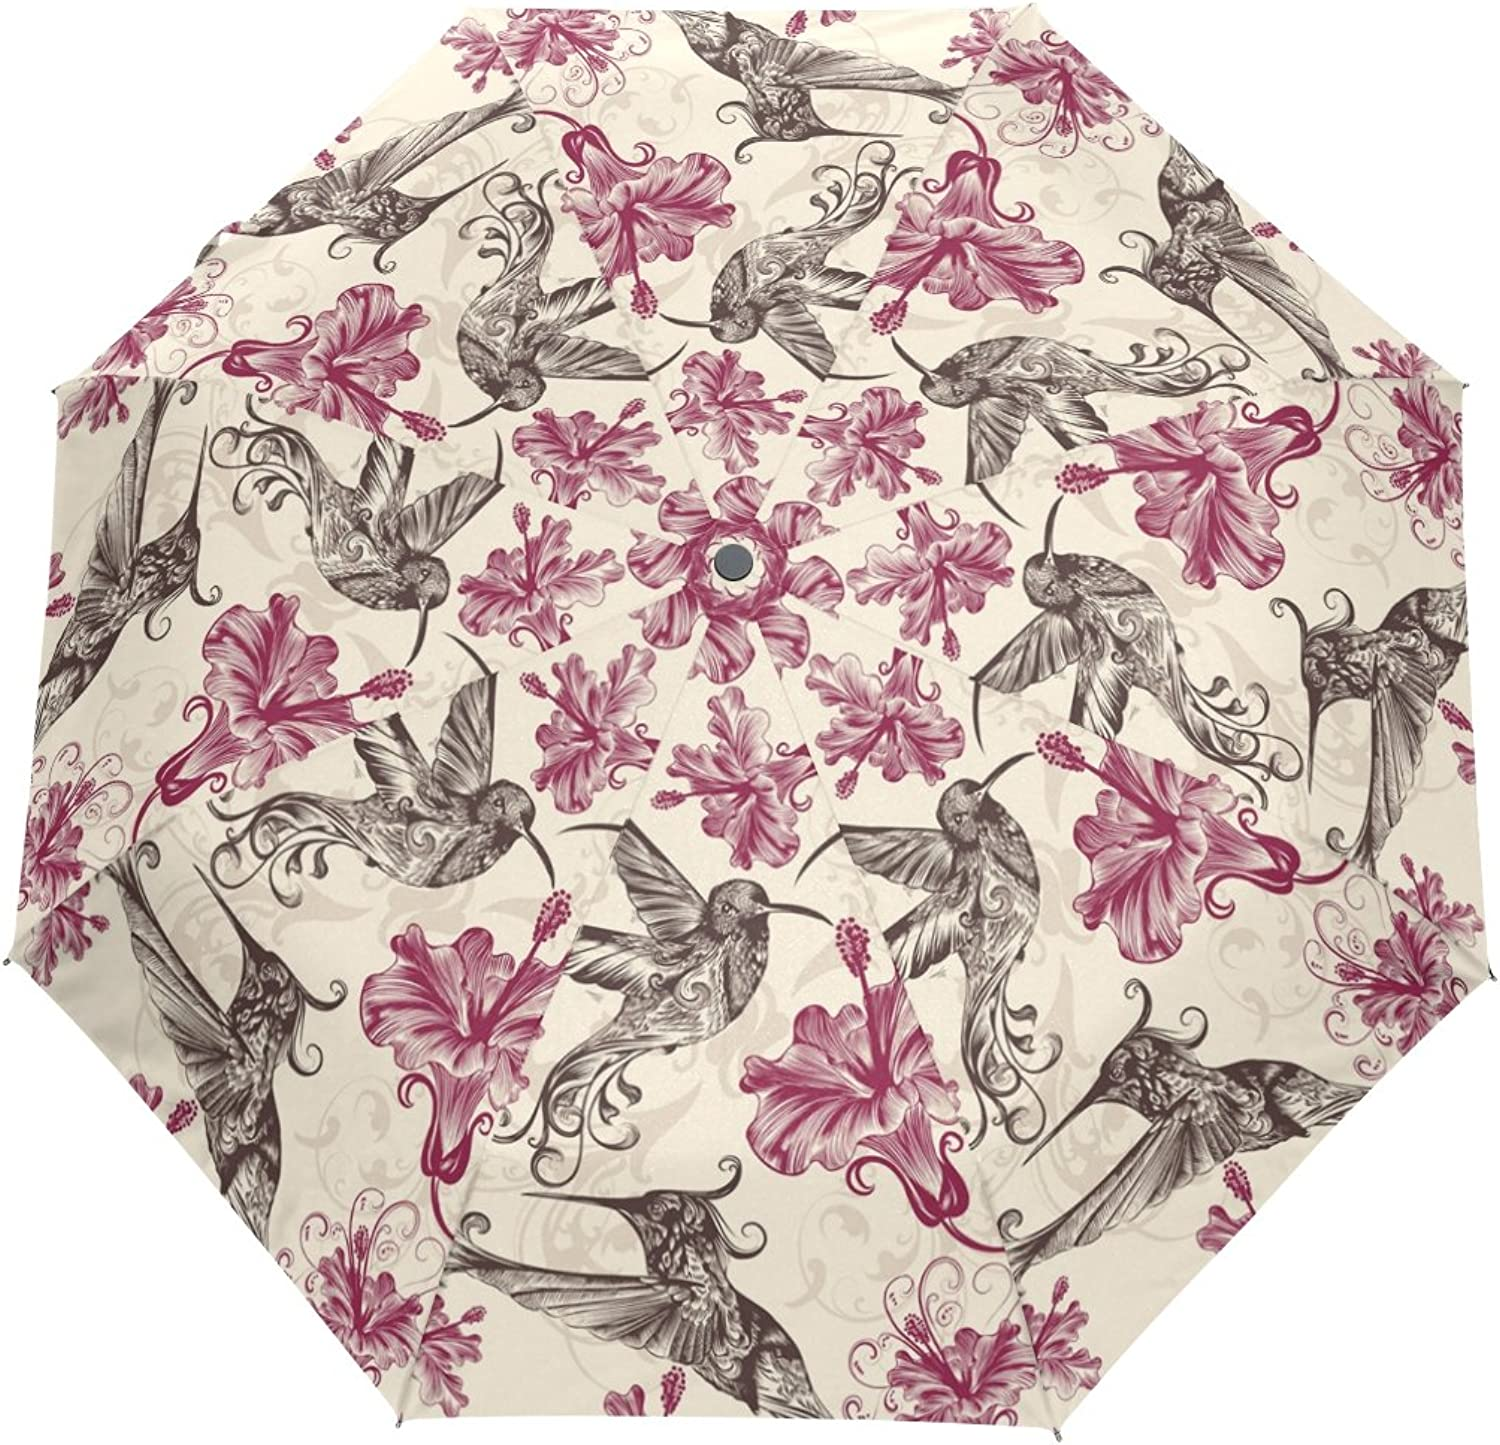 MASSIKOA Hummingbirds and Flowers Umbrella Double Sided Canopy Auto Open Close Foldable Travel Rain Umbrellas